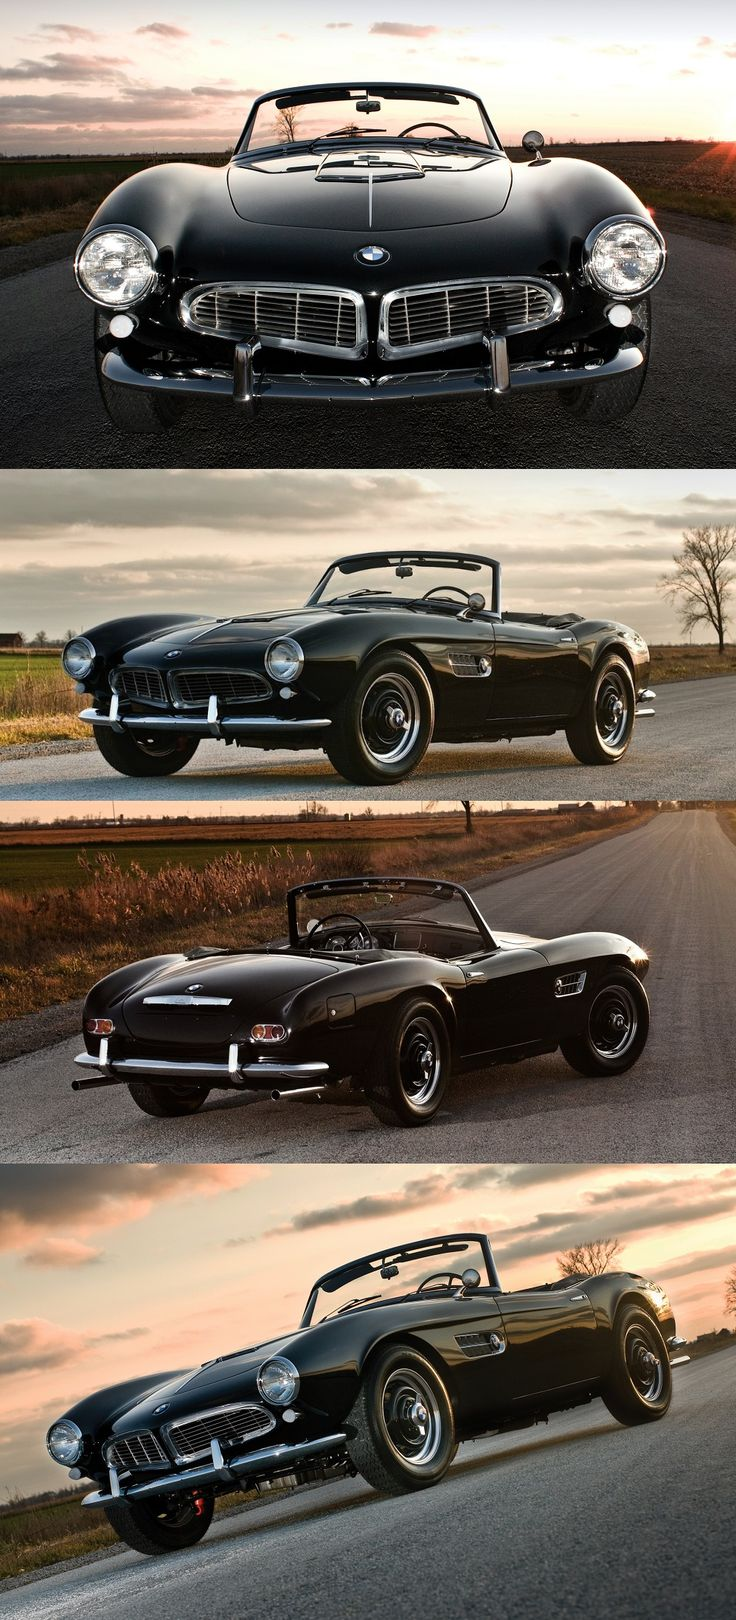 The Vintage BMW 507 Roadster History The BMW 507 2 doors roadster is a very special and extremely unique sports car...Re-pin Brought to you by Agents of #carinsurance at #HouseofInsurance in #EugeneOregon